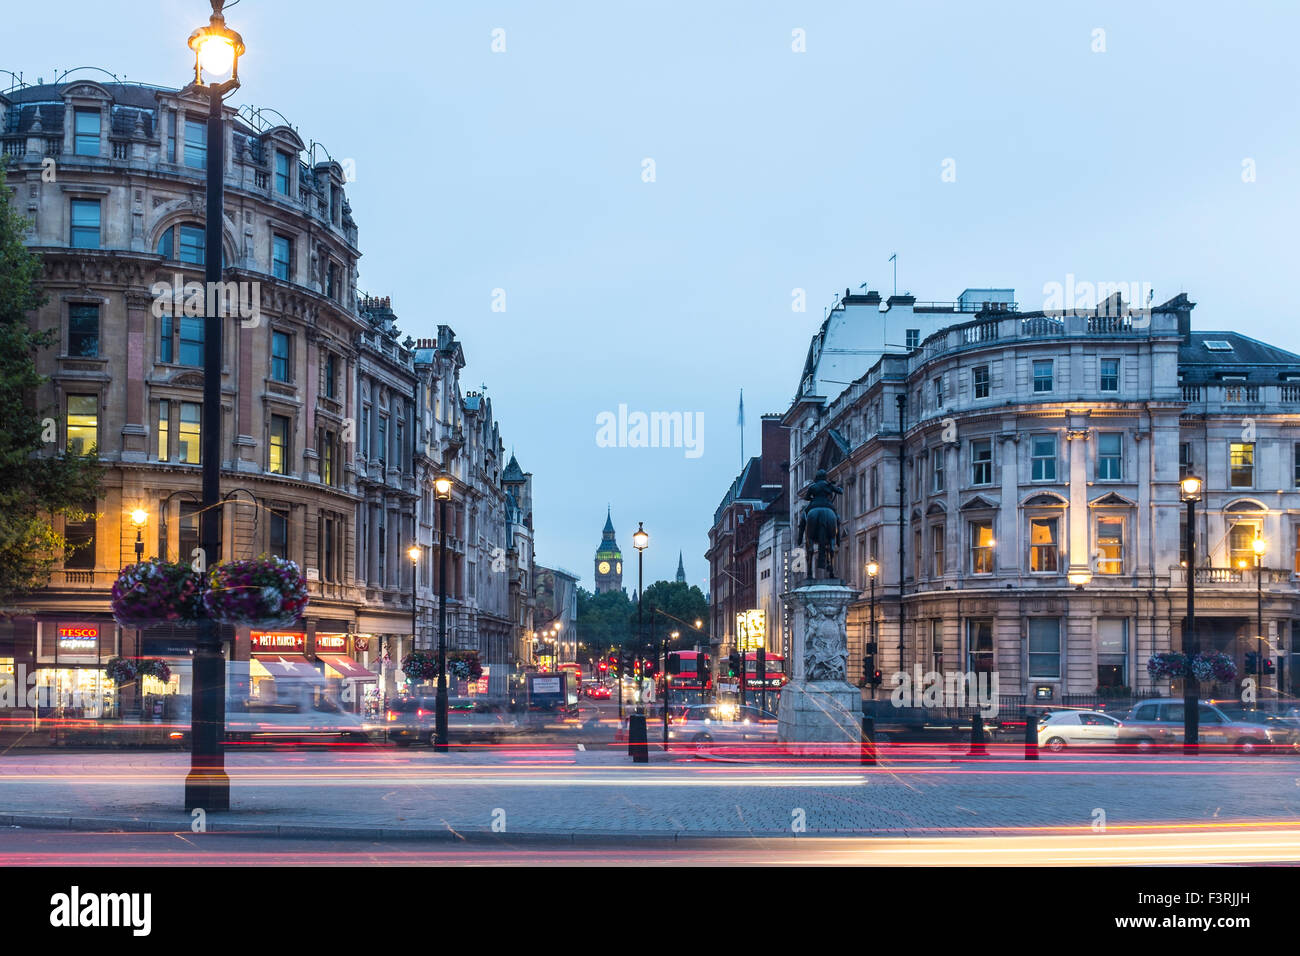 View from Trafalgar Square to Whitehall and Big Ben, London, United Kingdom - Stock Image